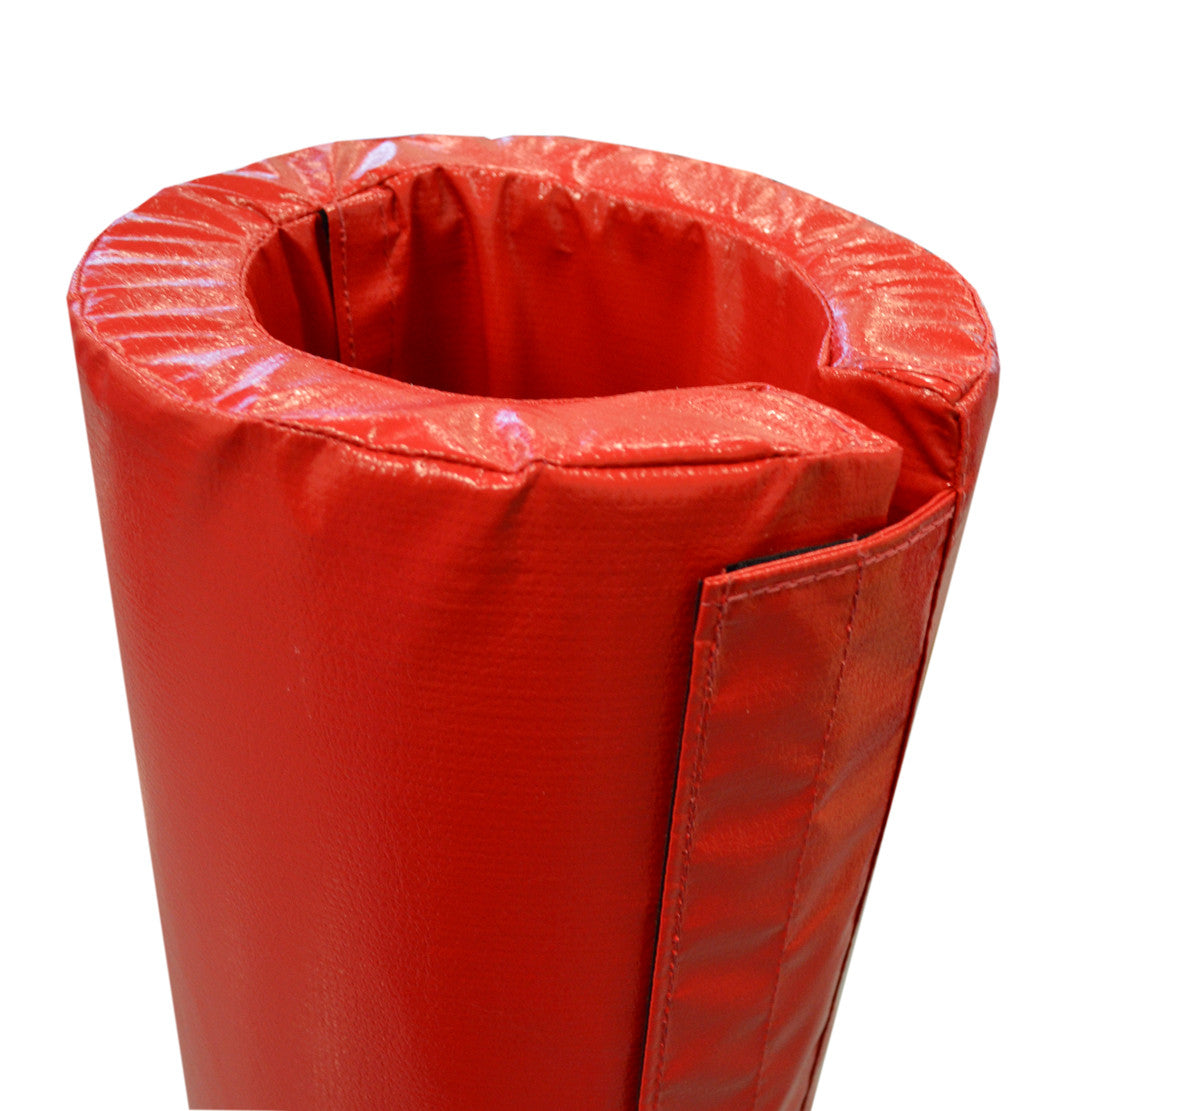 "6' Tall Pole Pad, 7"" Diameter with Velcro Closure"